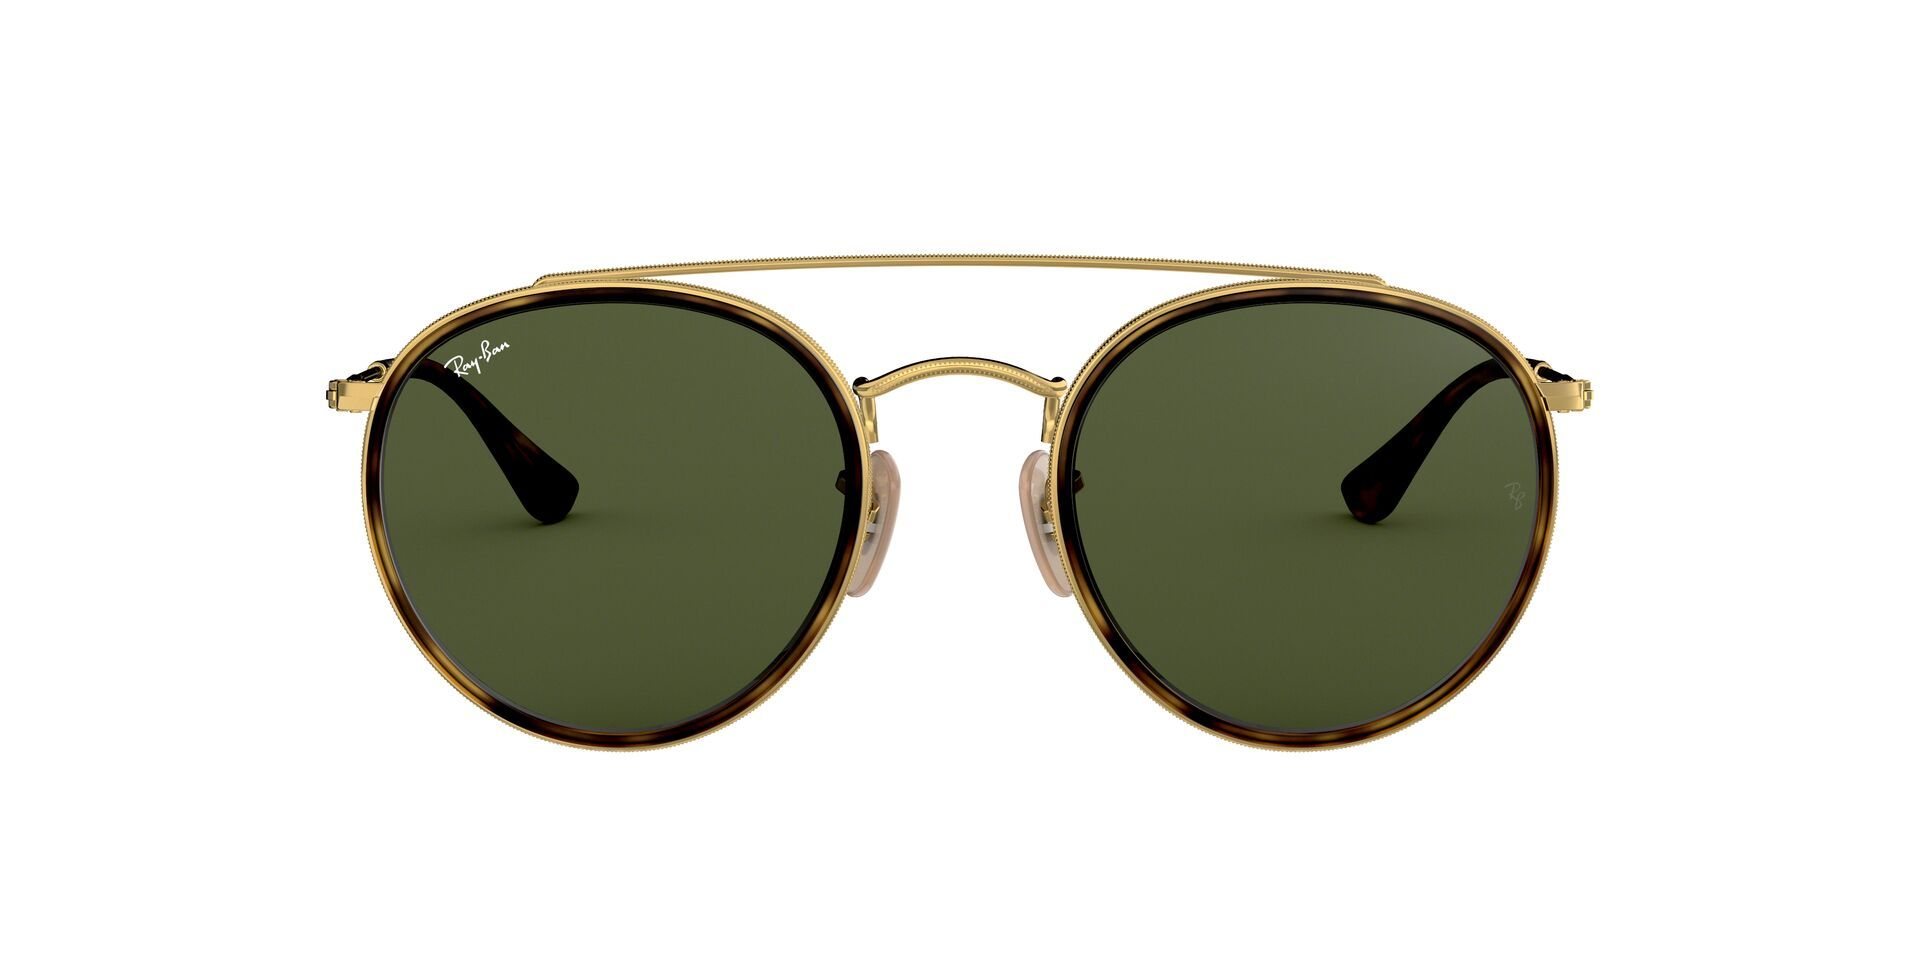 Ray Ban - RB3647-N Gold Oval Unisex Sunglasses - 51mm-Sunglasses-Designer Eyes